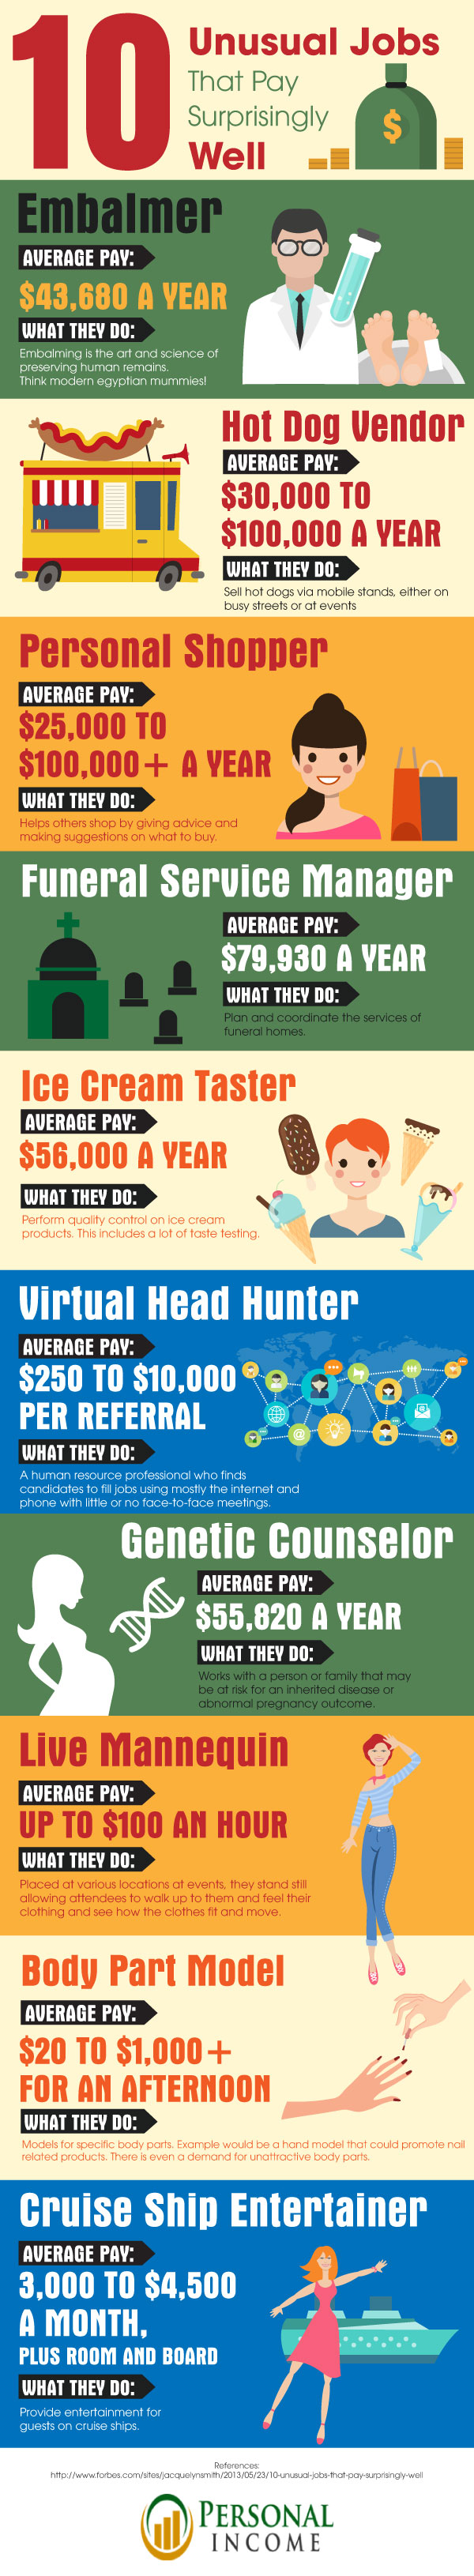 Infographic: Unusual Jobs That Pay Surprisingly Well